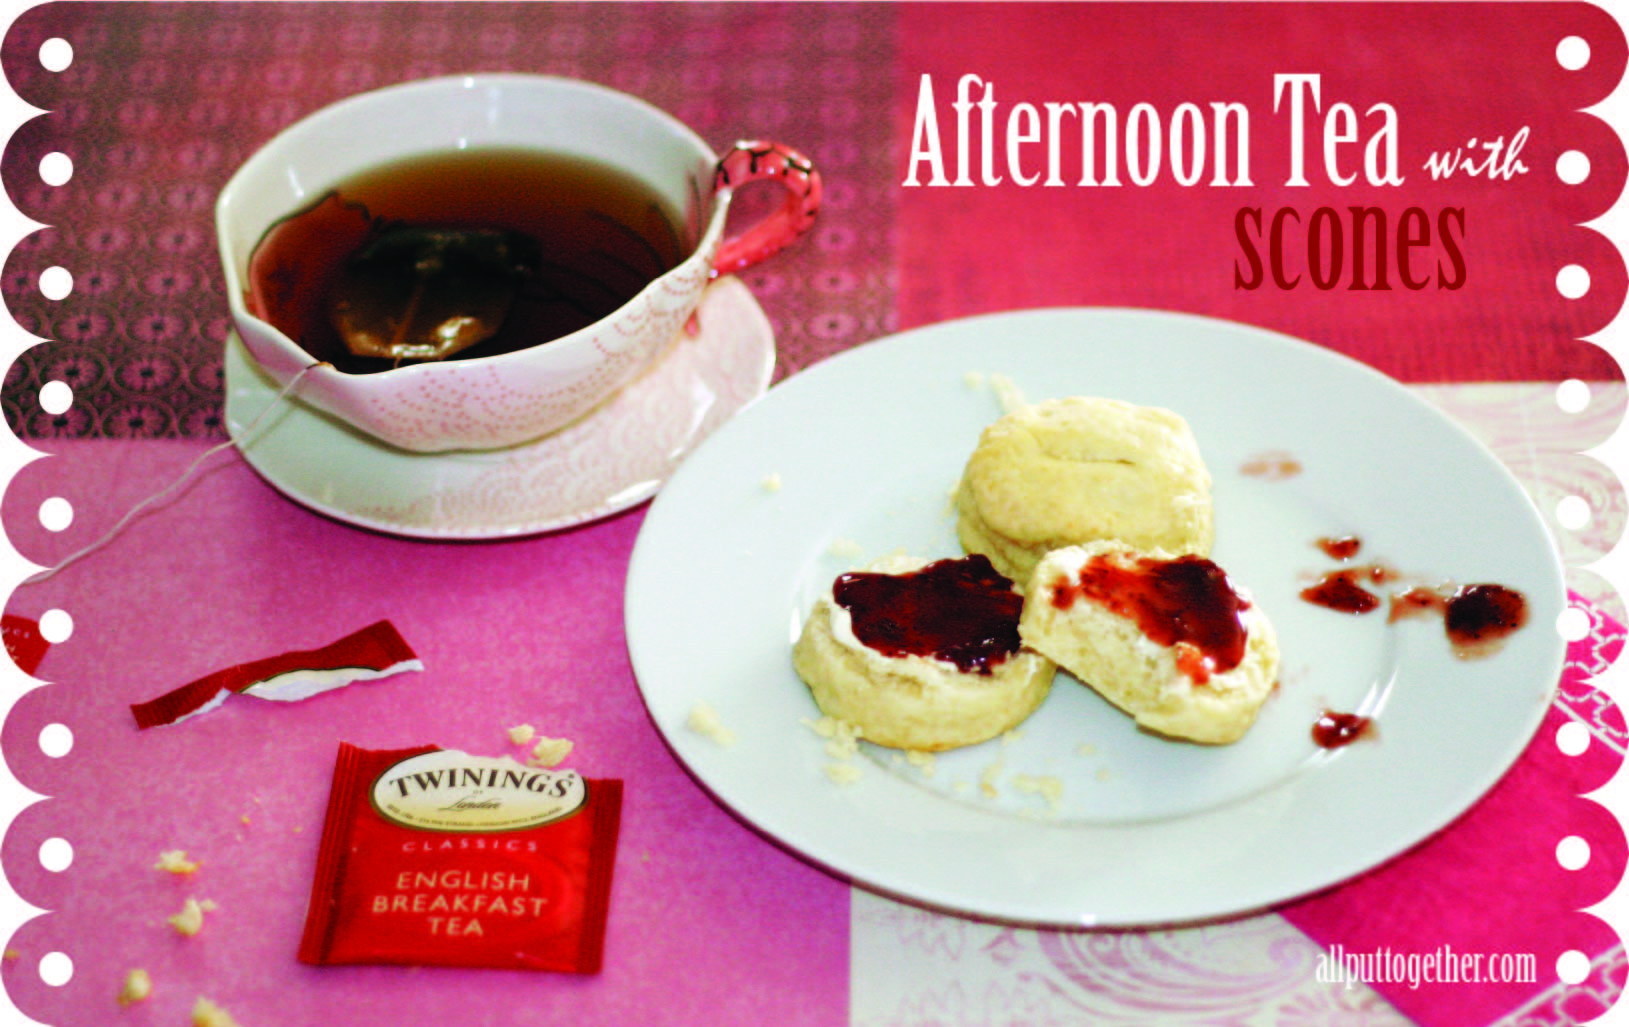 Afternoon Tea with Scones | All Put Together